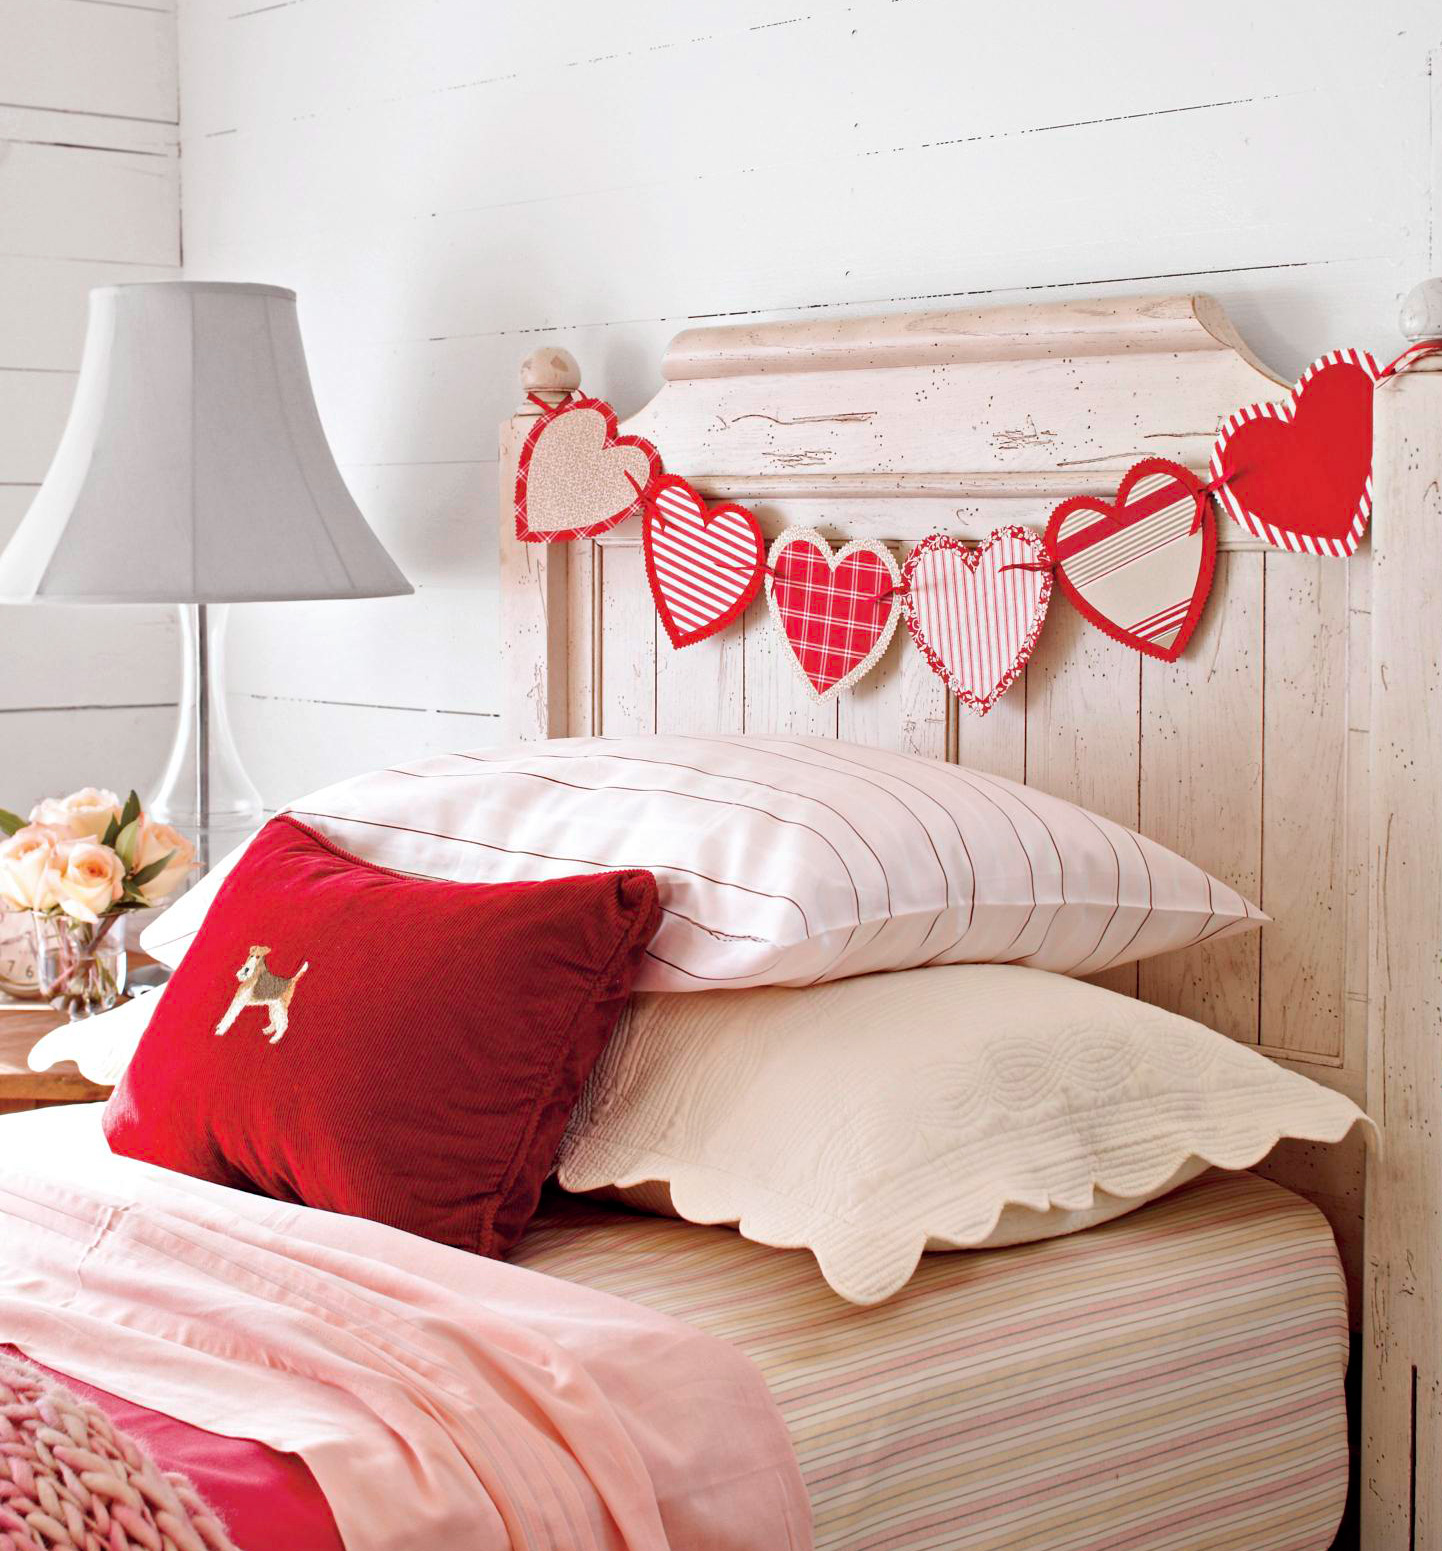 Red-and-white garland